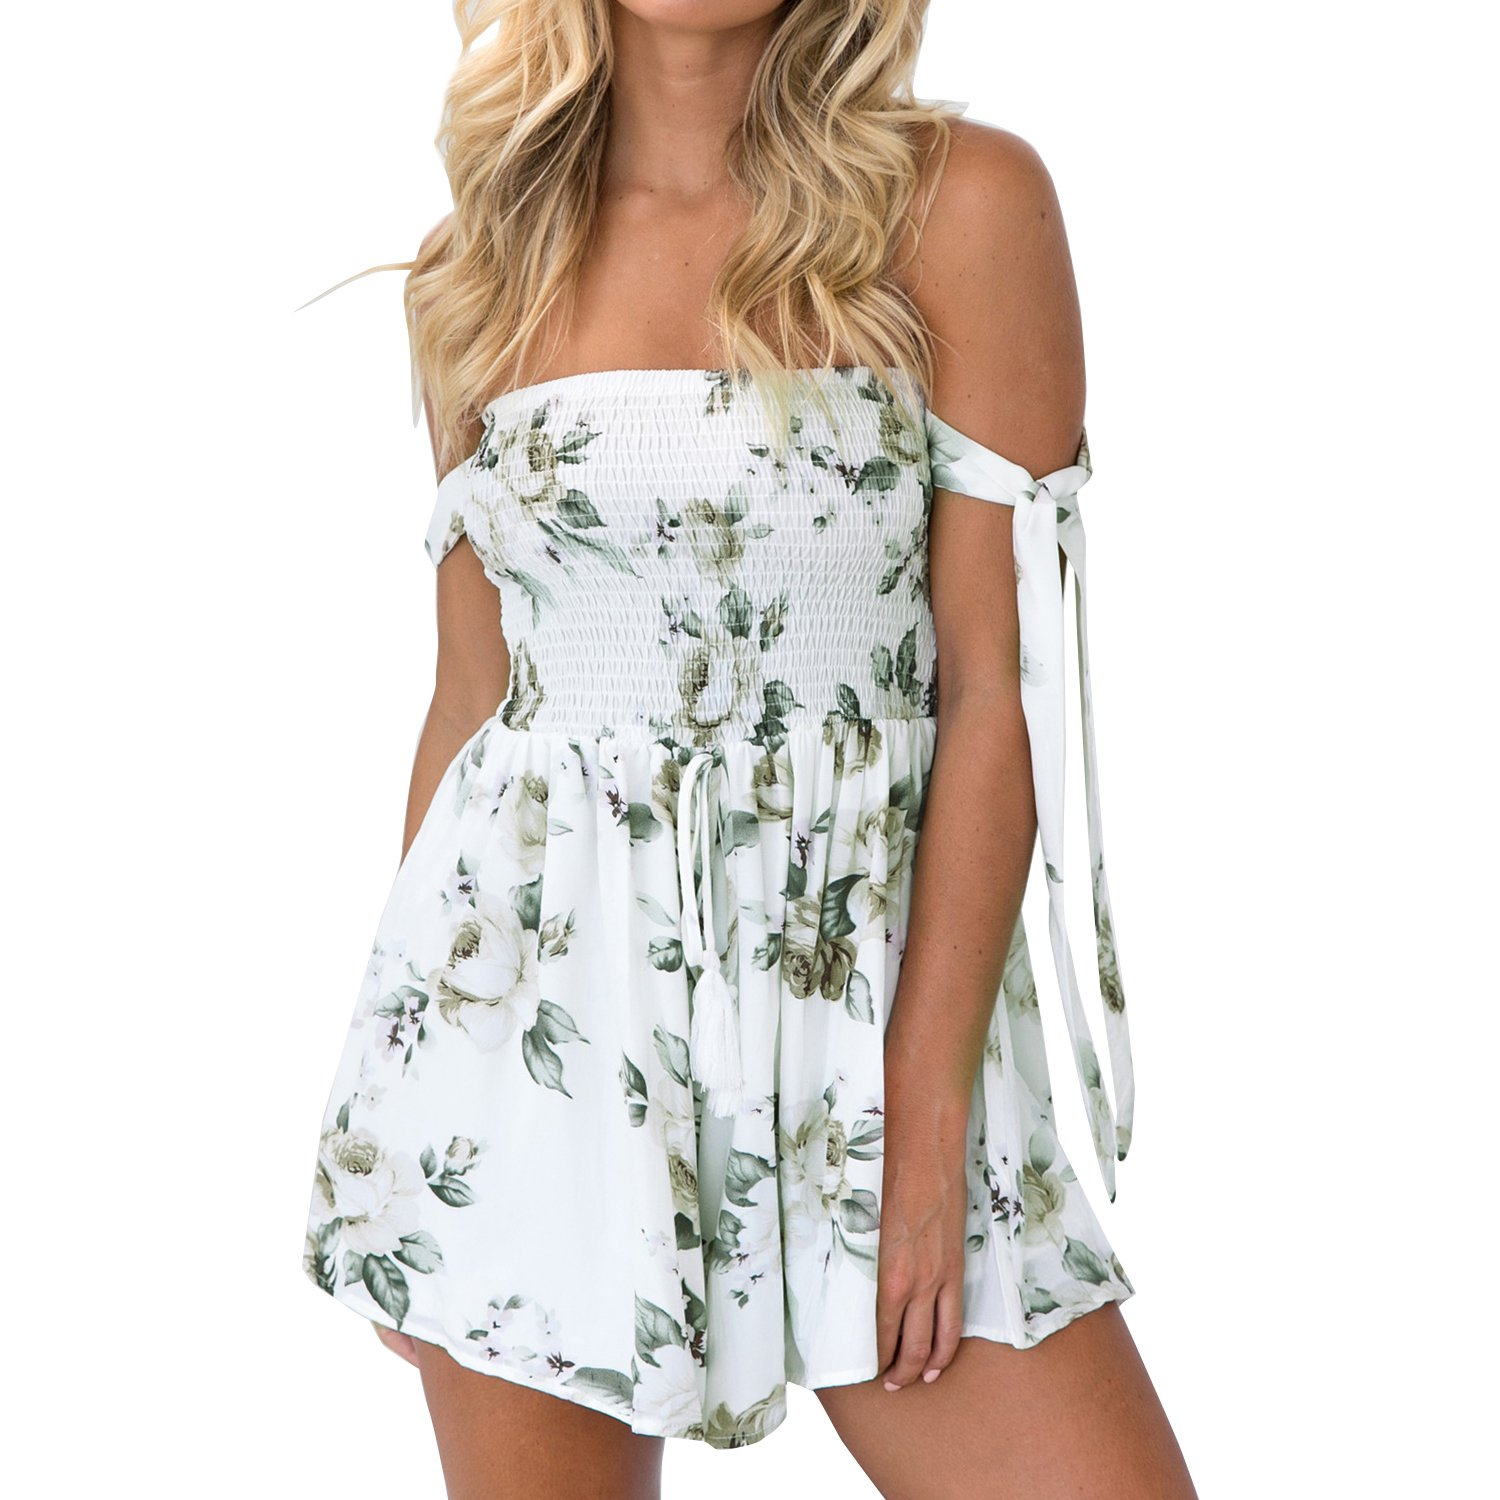 VertHome Floral Tube Top Romper Off Shoulder Pleated Pantskirt Style Short Jumpsuit with Arm Straps